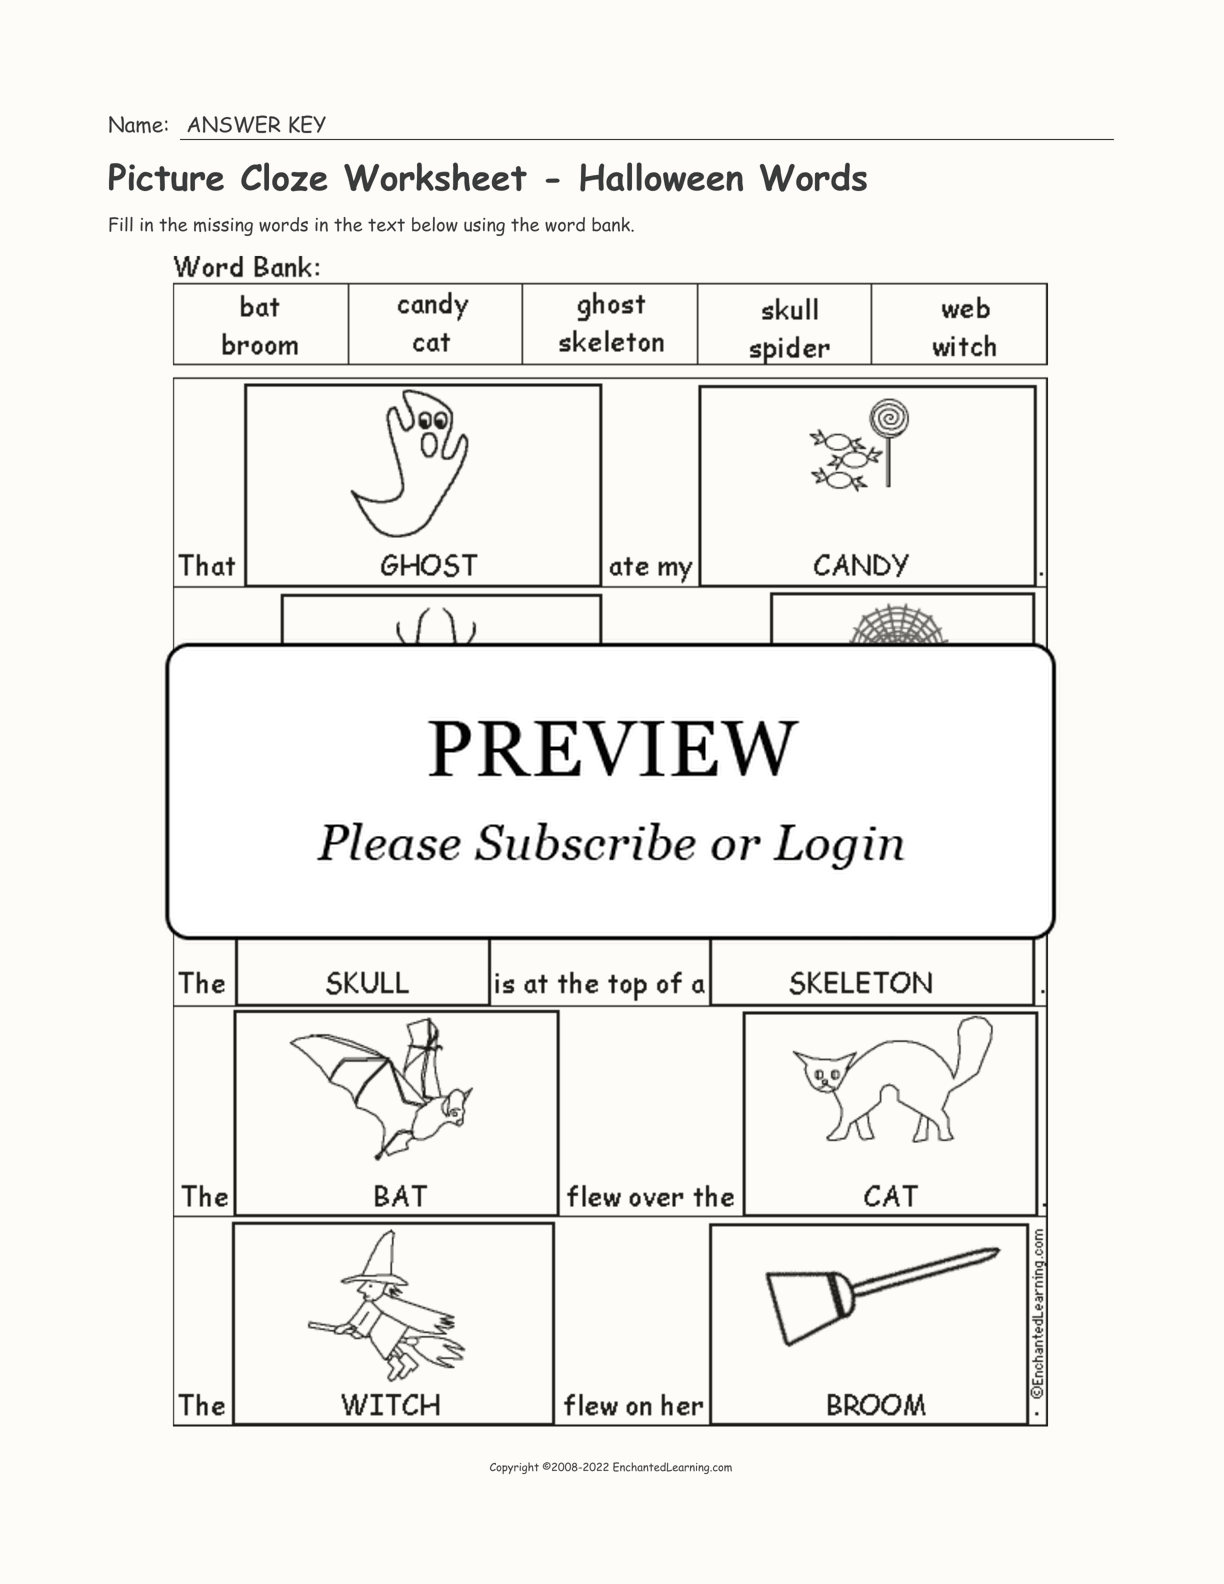 Picture Cloze Worksheet